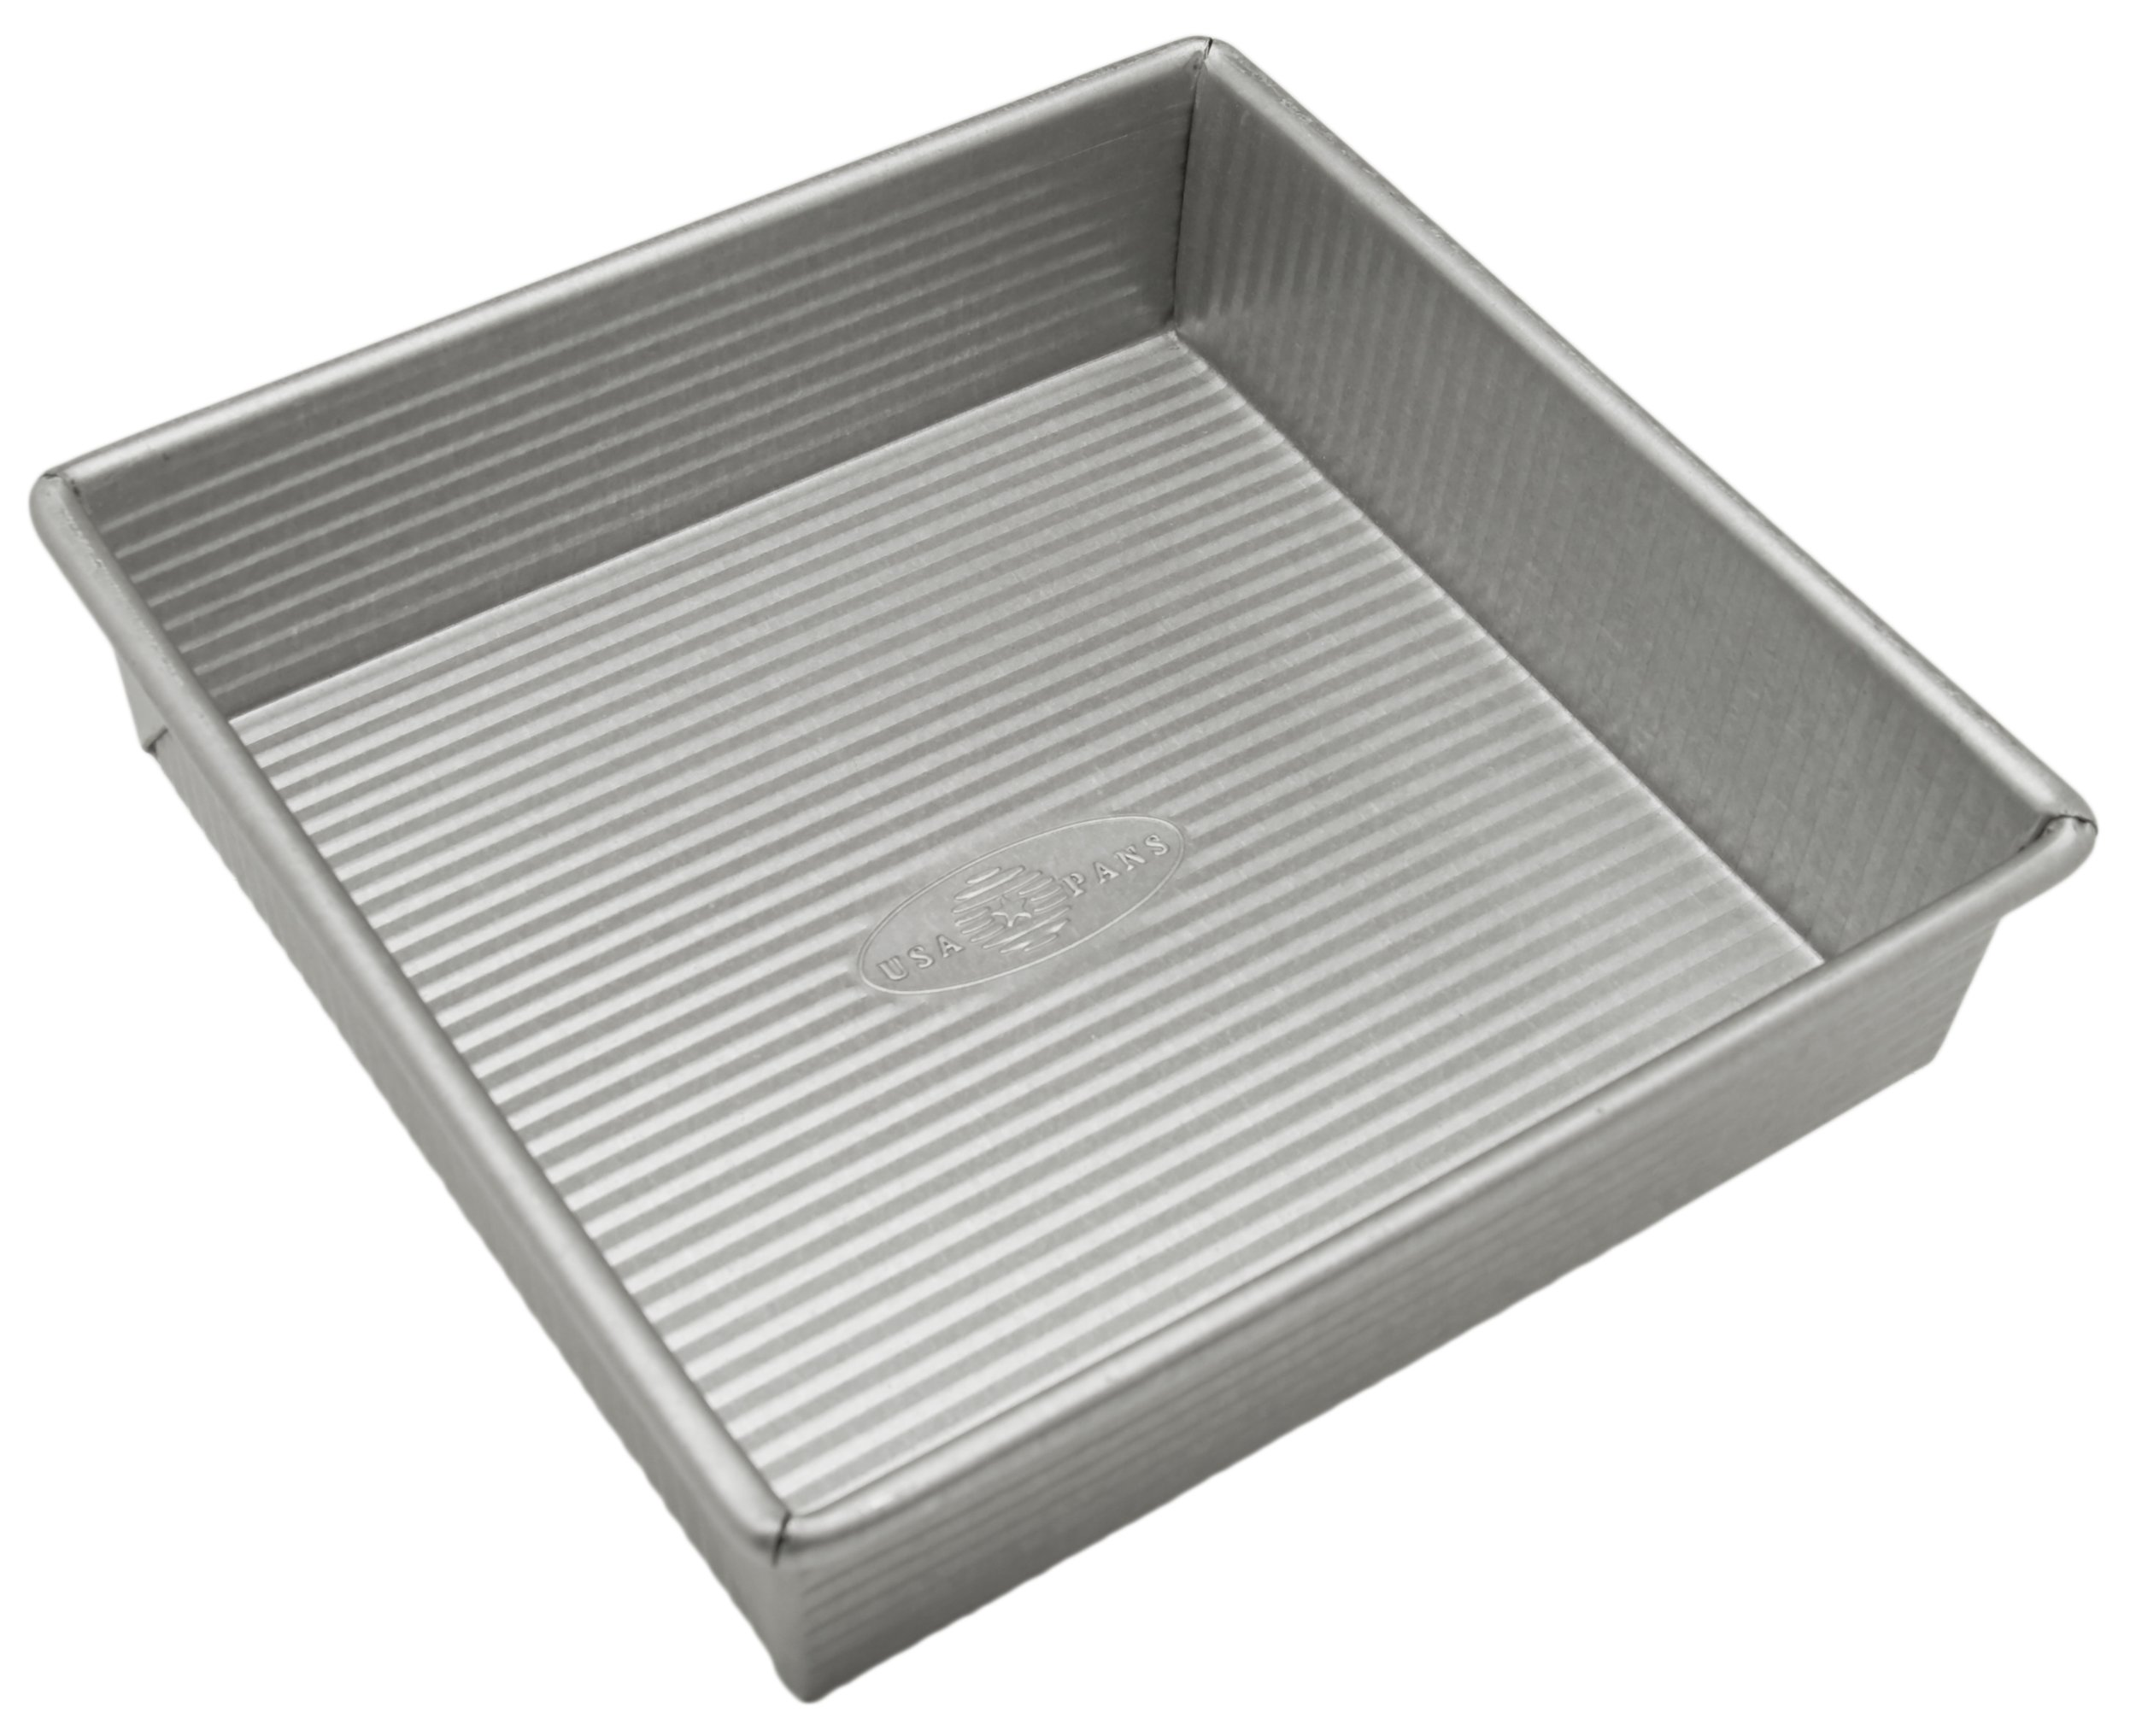 USA Pan Bakeware Square Cake Pan, 8 inch, Nonstick & Quick Release Coating, Made in the USA from Aluminized Steel by USA Pan